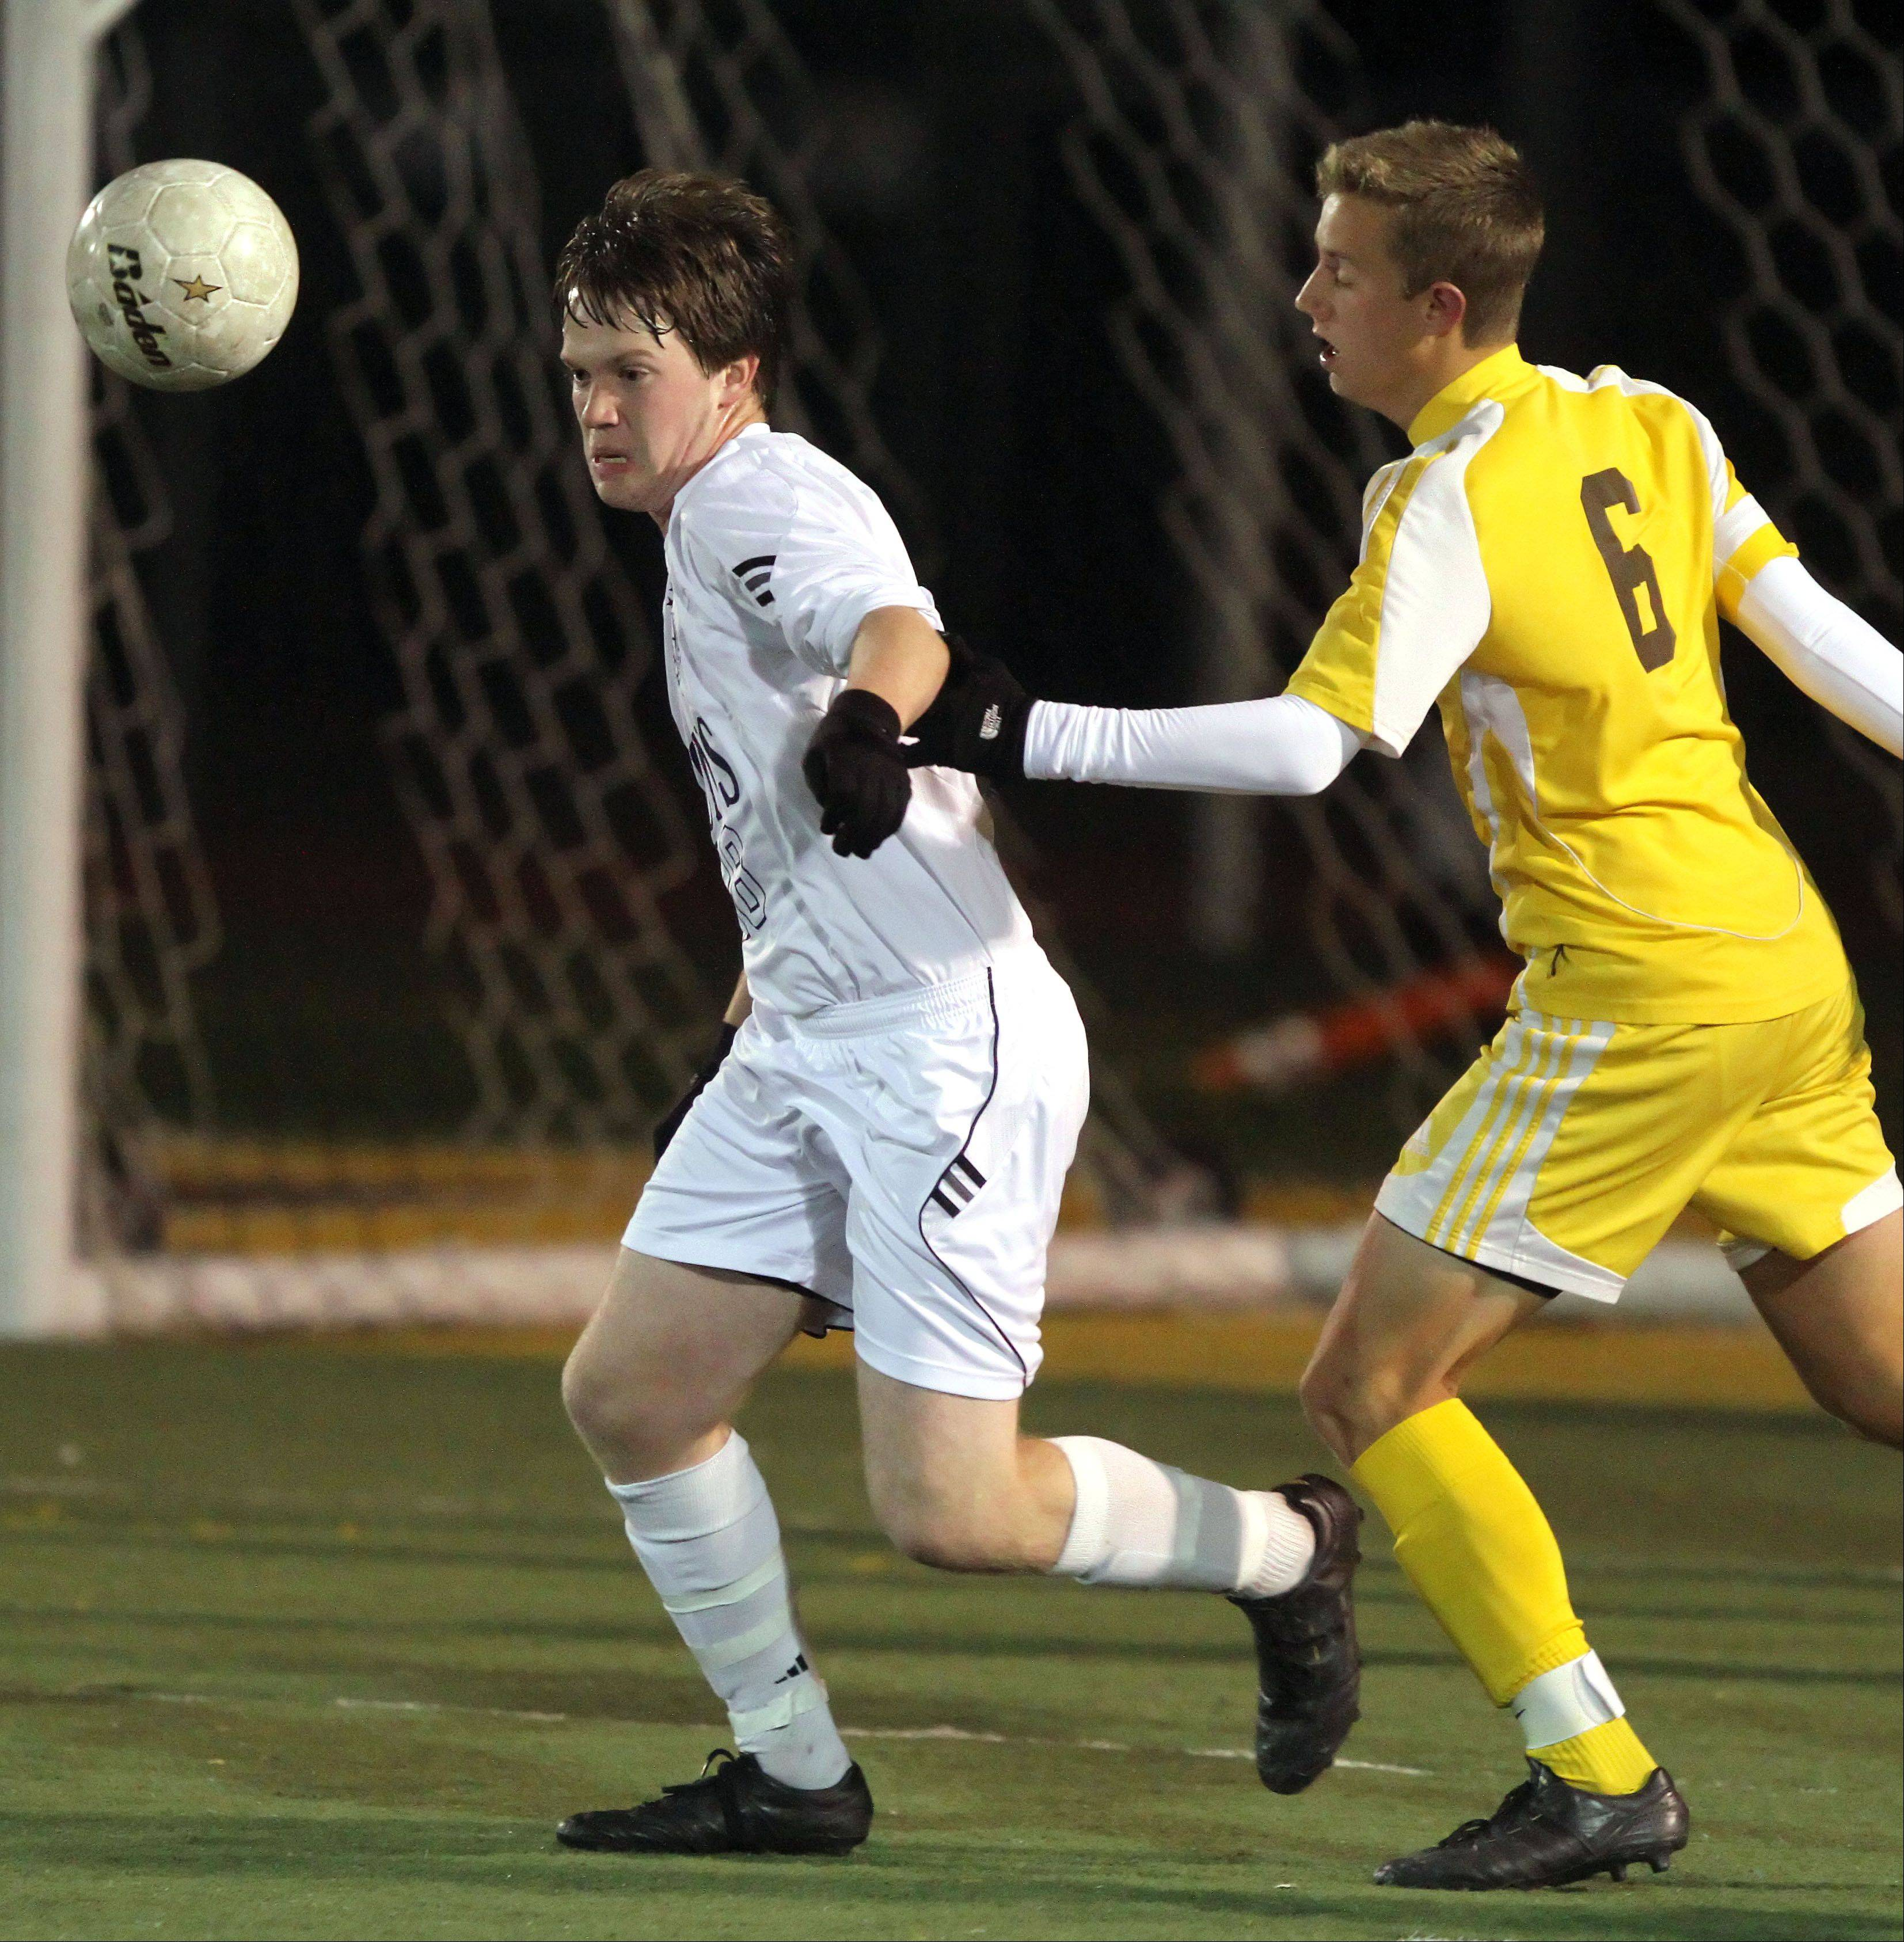 St. Viator's Kevin McMahon, left, and Carmel's Evan Potter battle for the ball during regional semifinal action Tuesday night at Carmel Catholic High School.